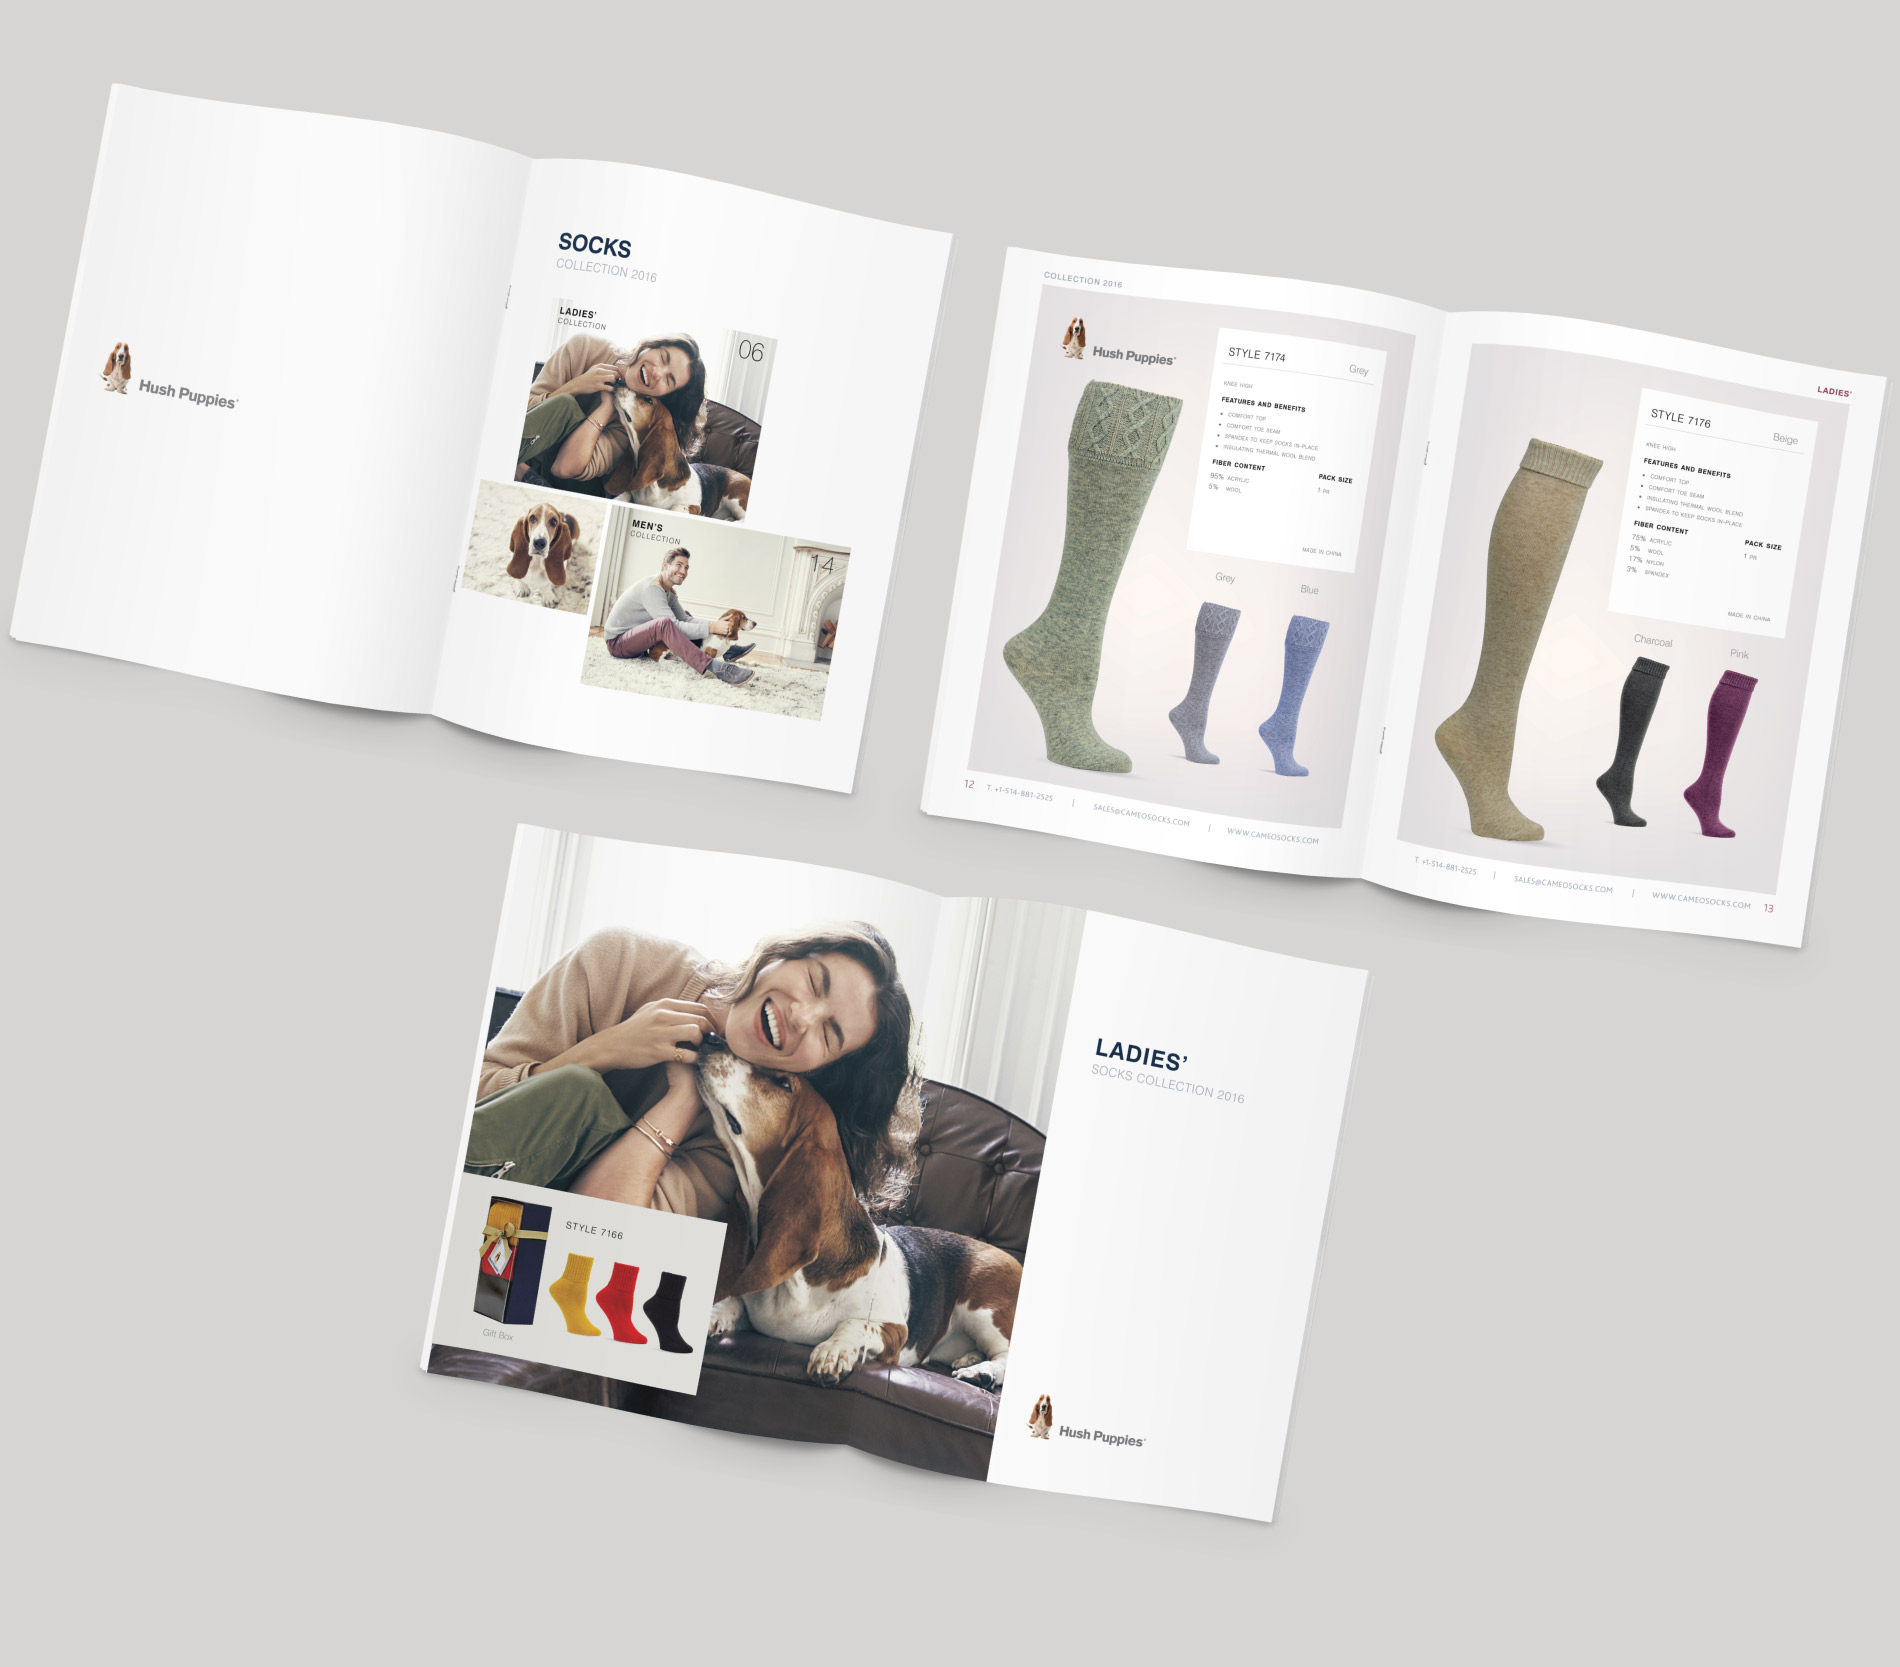 Conception du catalogue de chaussettes et bas Hush Puppies